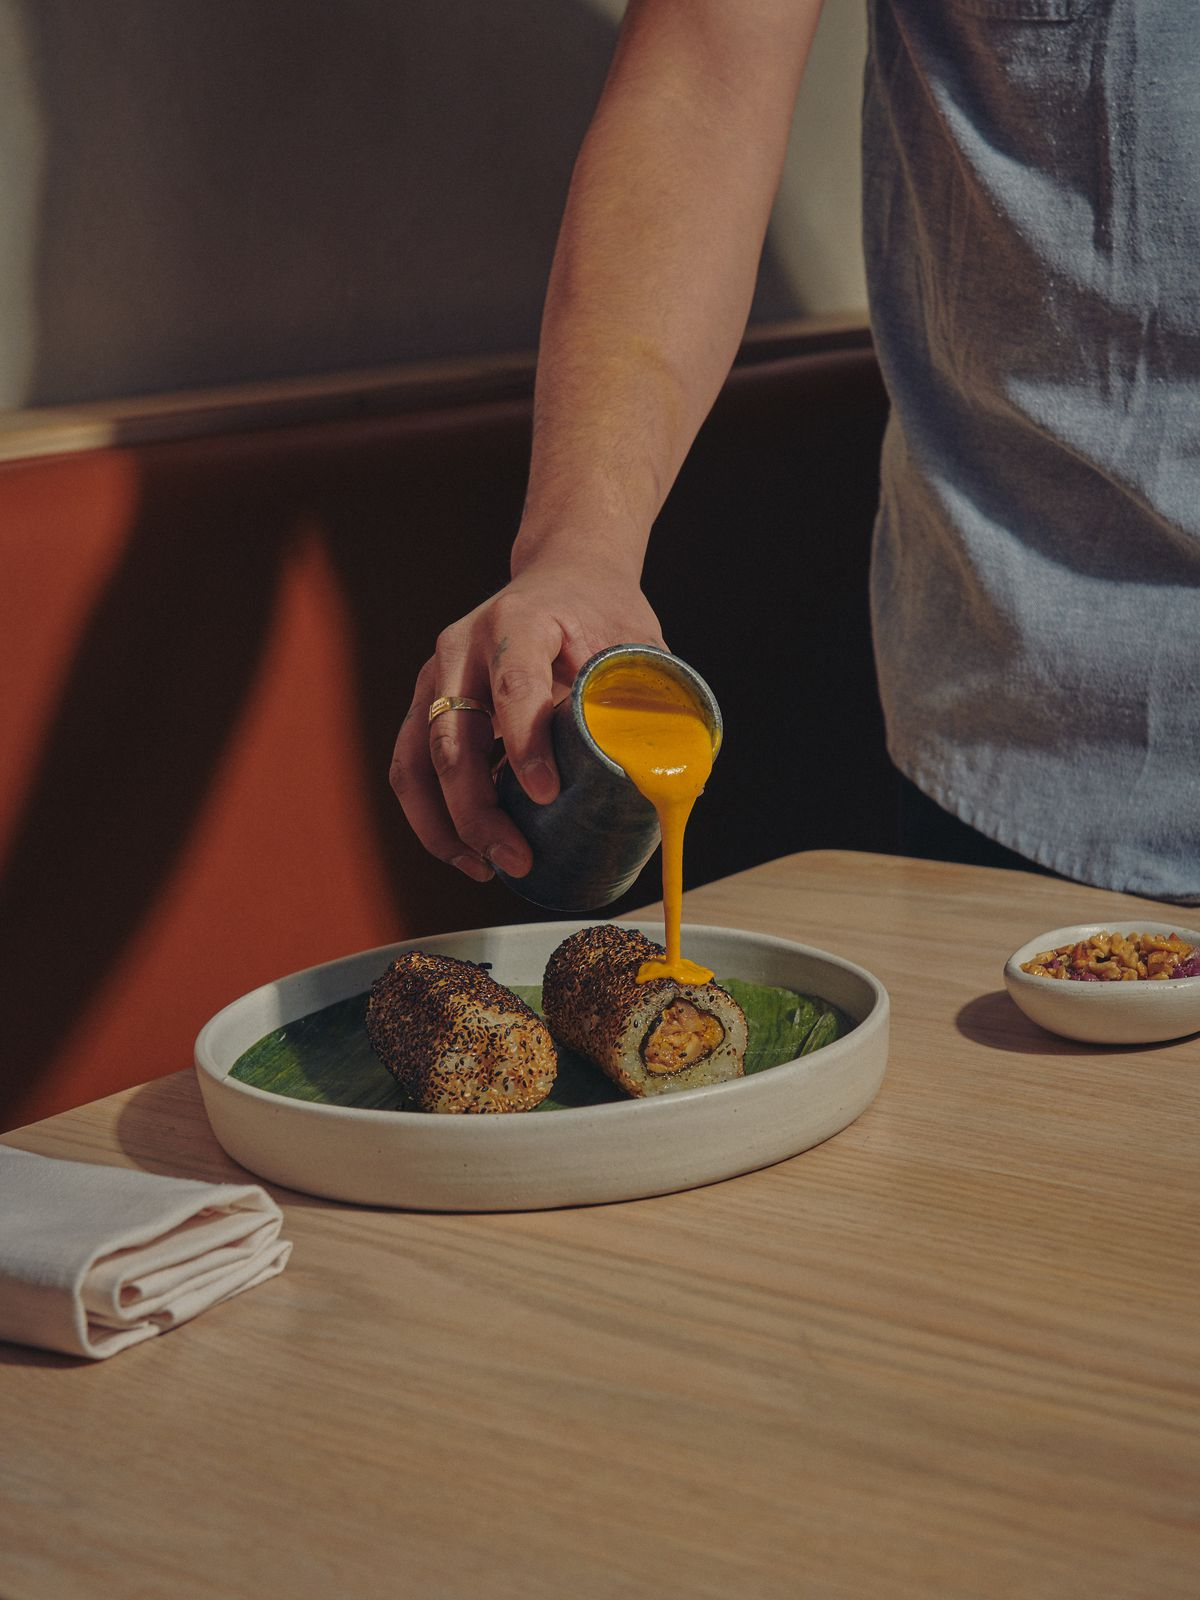 A chef pours orange, chile-laced walnut sauce over cylindrical chicken and seaweed maki rolls